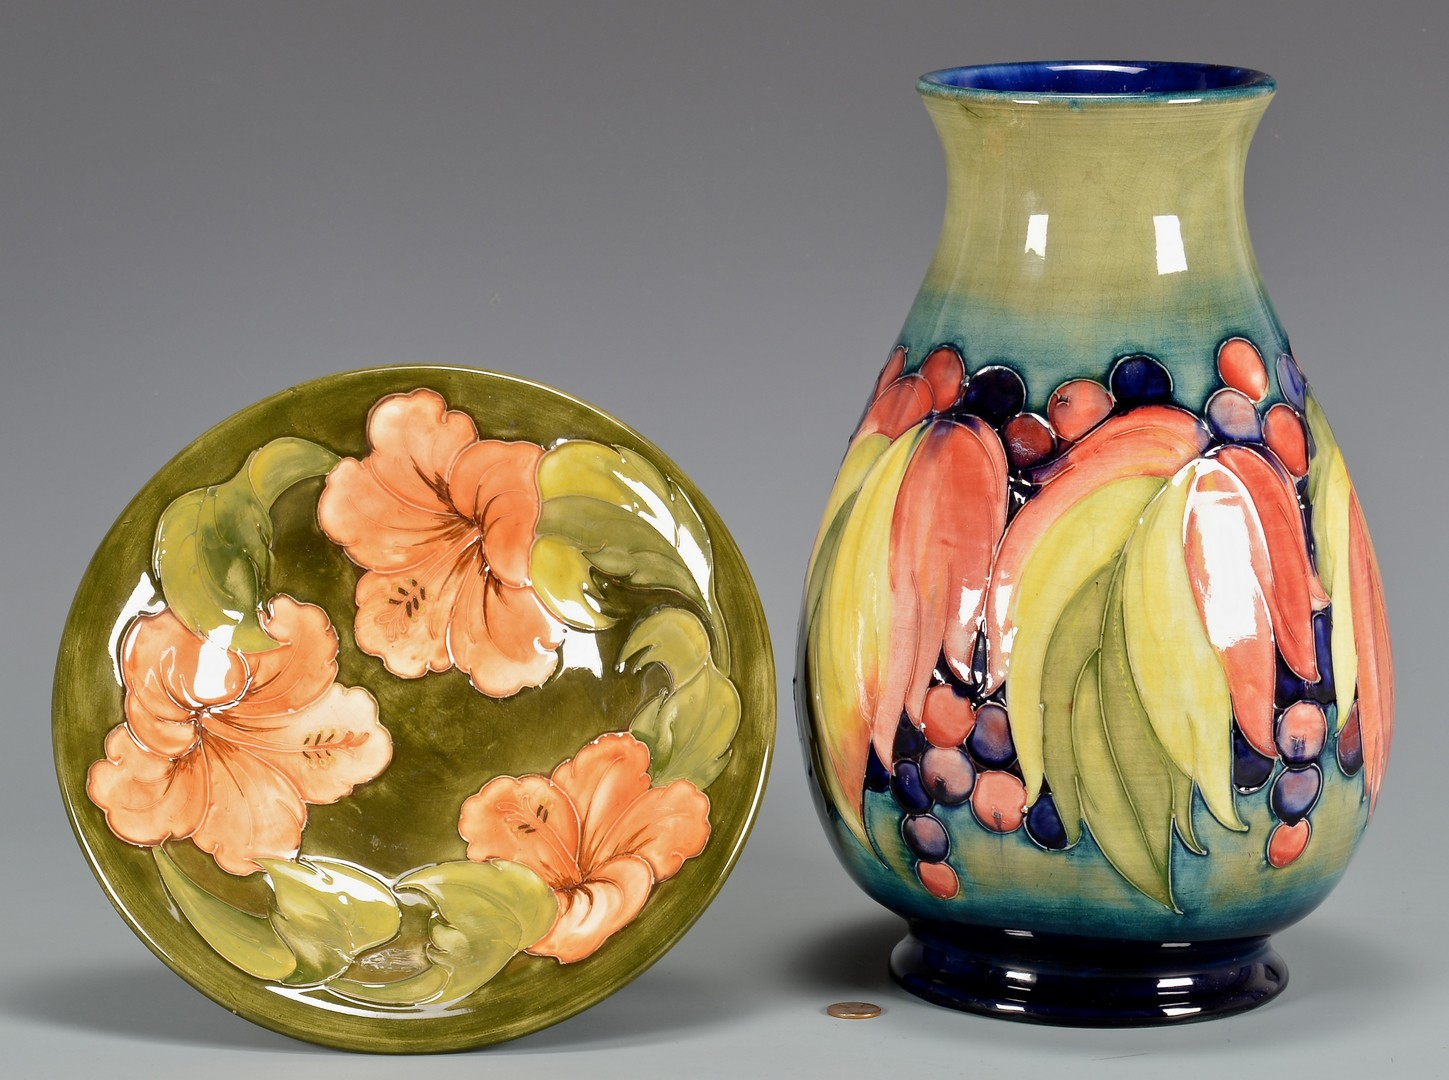 Lot 739: 2 Pcs. Moorcroft Pottery, Vase & Bowl